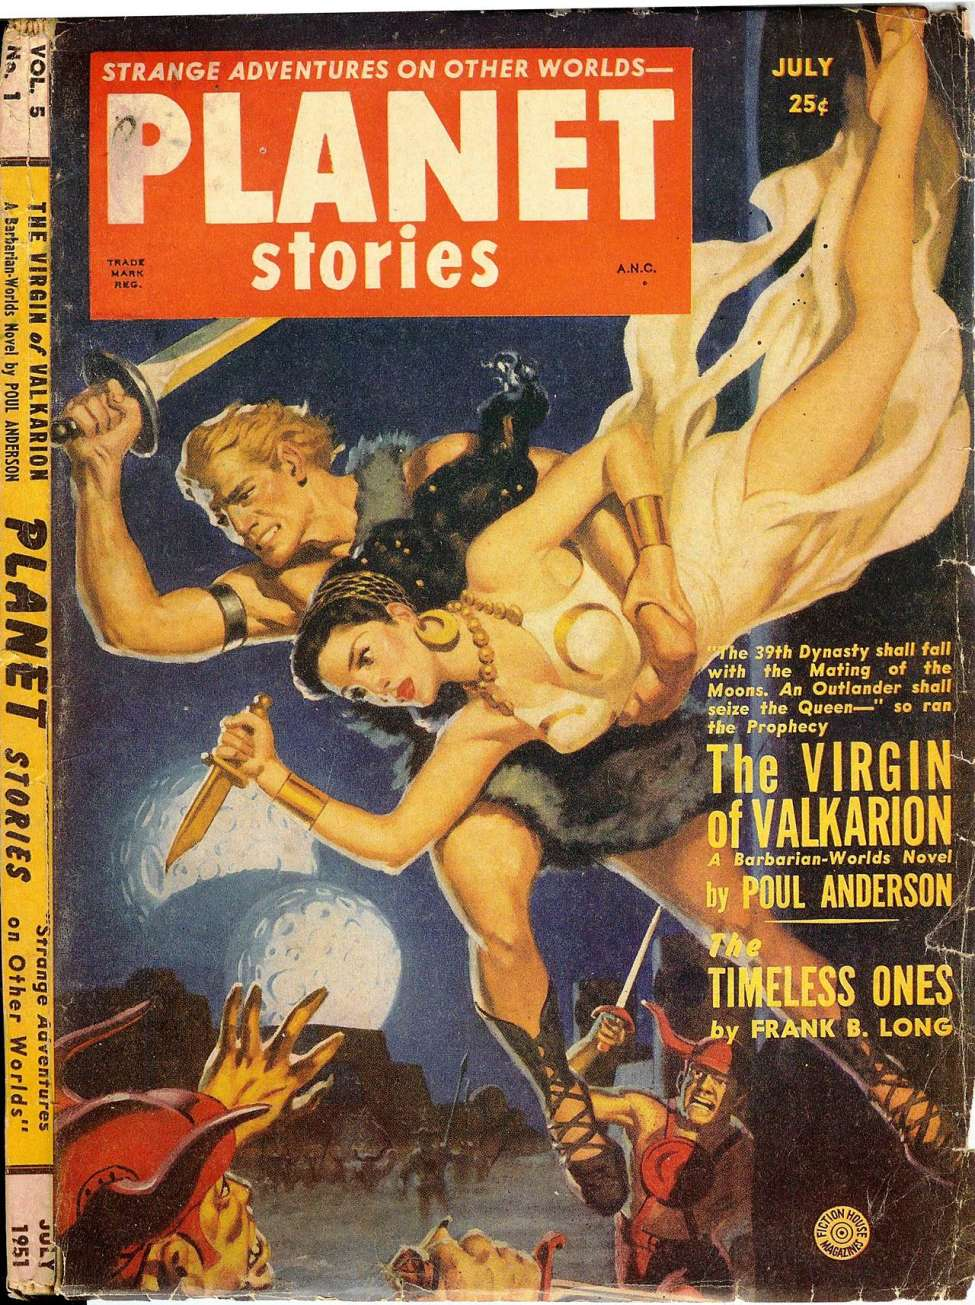 Comic Book Cover For Planet Stories v05 01 - The Virgin of Valkarion - Poul Anderson